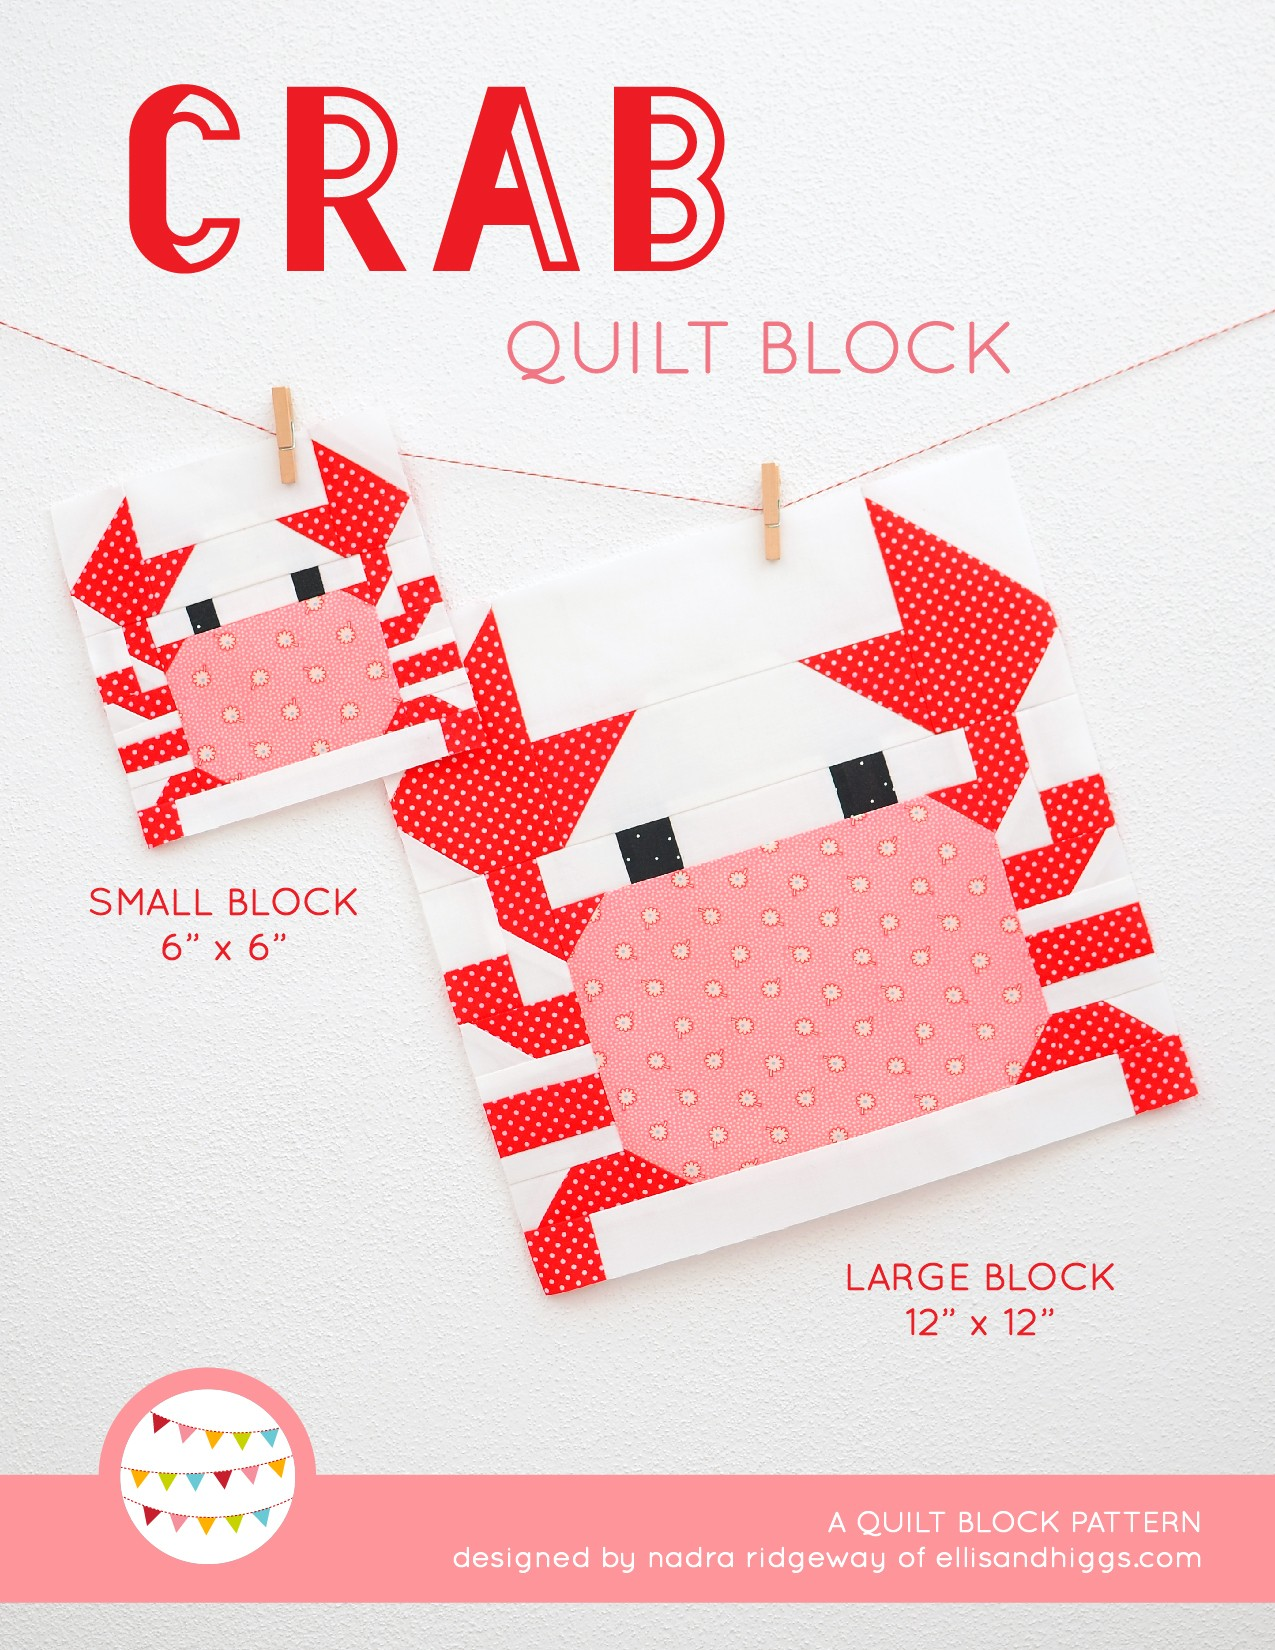 Crab quilt block in two sizes hanging on a wall